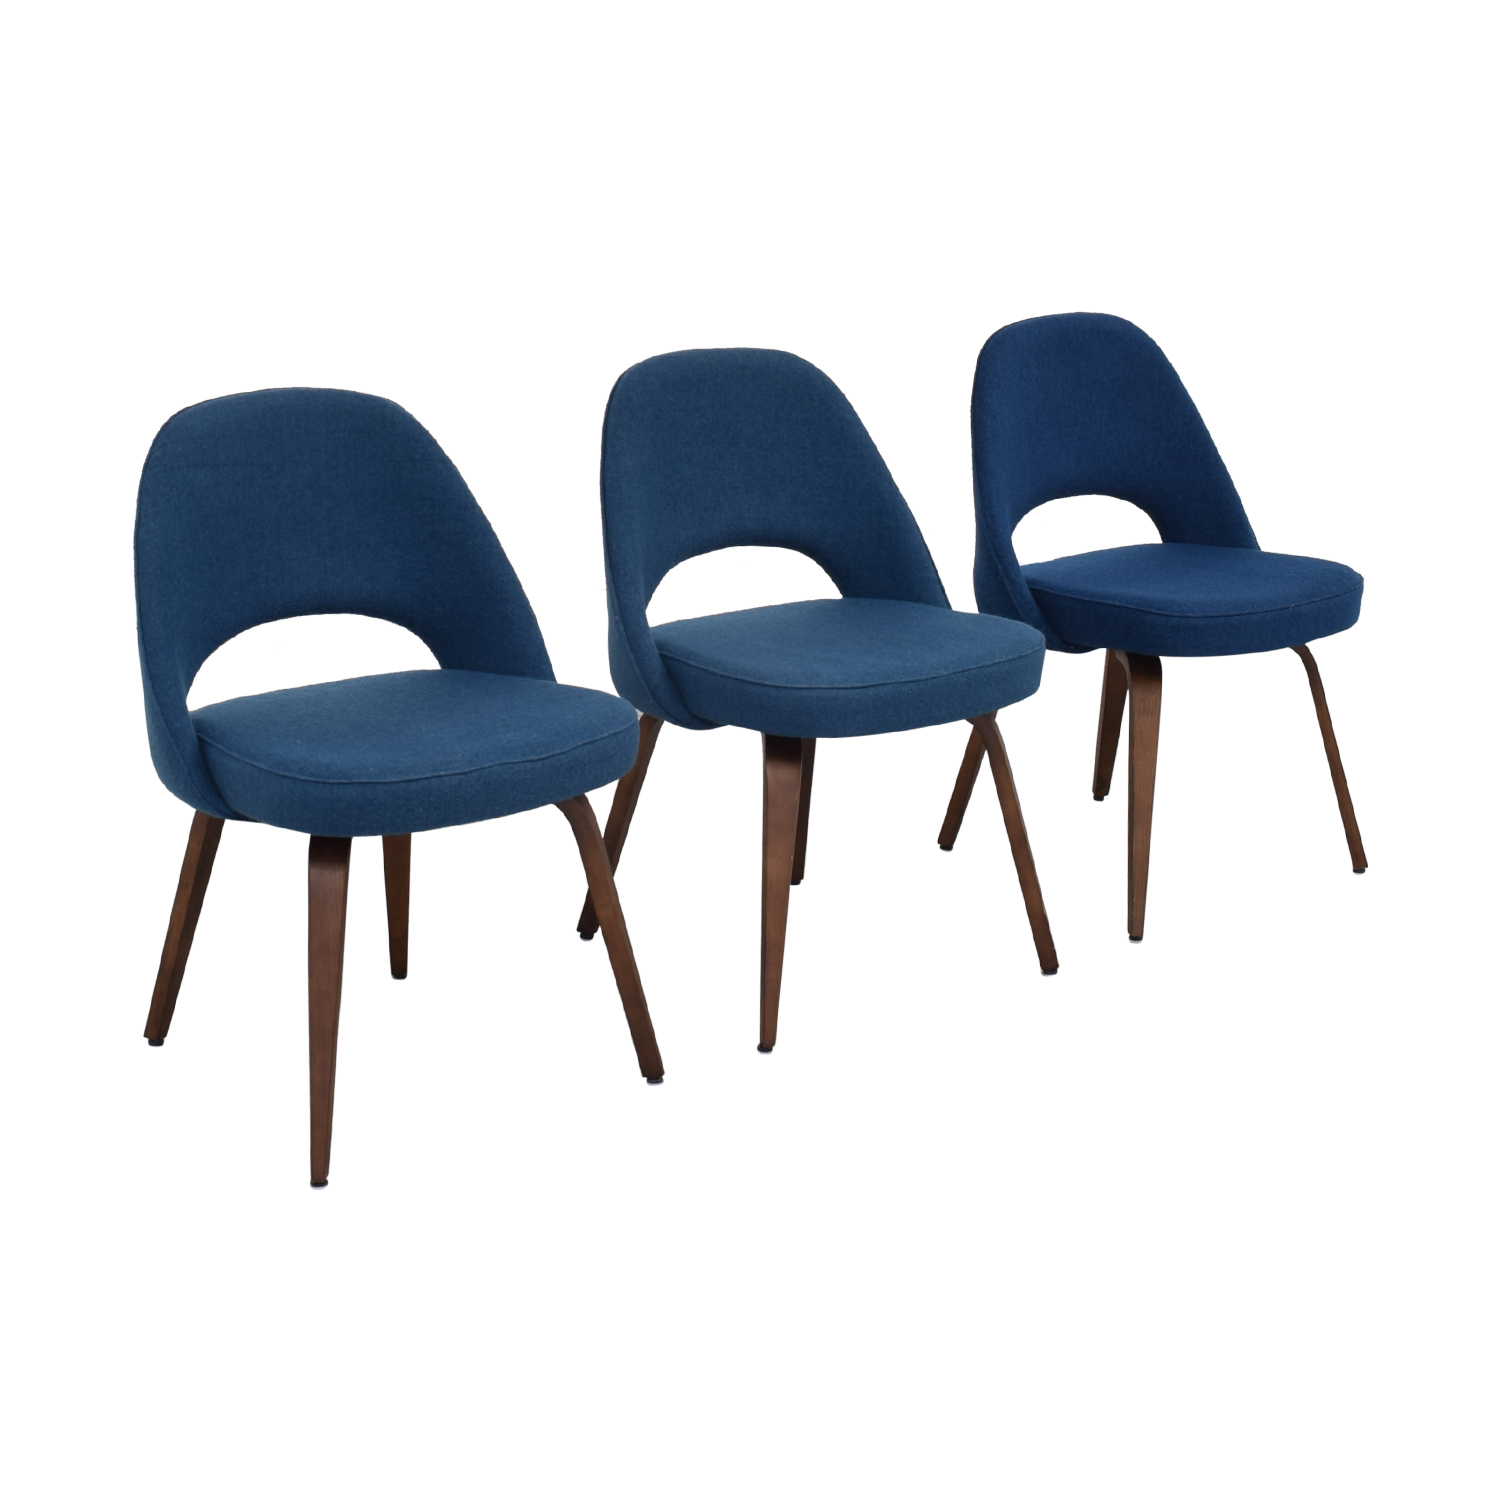 buy Rove Concepts Executive Side Chairs Rove Concepts